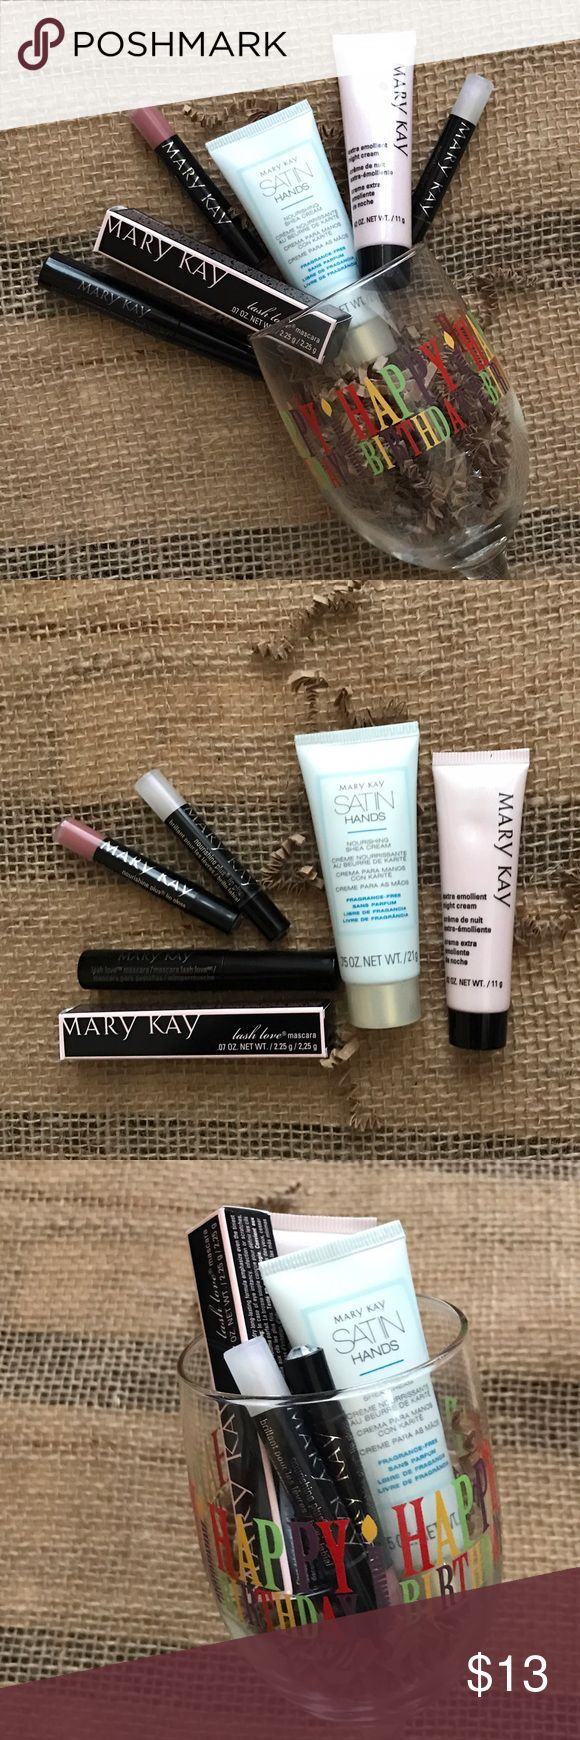 "Happy Birthday Wine Makeup Gift Set ""Happy Birthday"" Wine Glass filled with Mary Kay Deluxe / Travel Samples: 2 mini Lip Gloss, Extra Emollient Night Cream, Lash Intensity Black Mascara, & Satin Hands Lotion ✅All items new / not expired. ❌No trades. Price is firm unless bundled. Mary Kay Makeup"